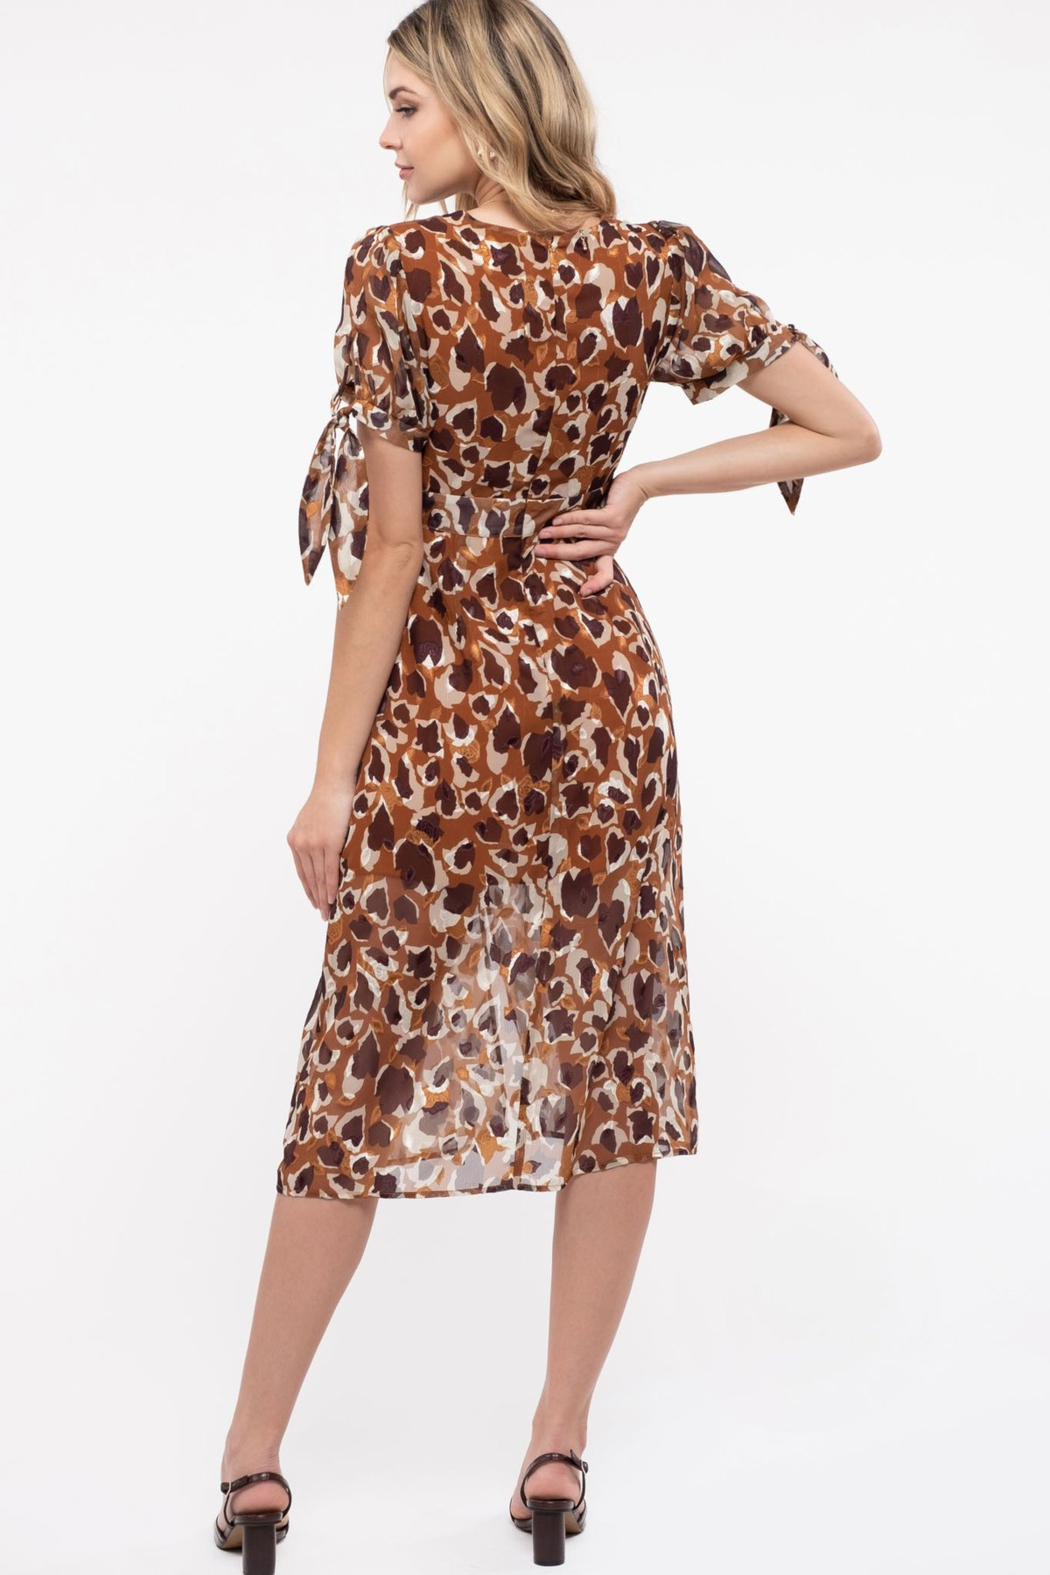 Just One Answer Latte Leopard Print Midi Dress - Front Full Image